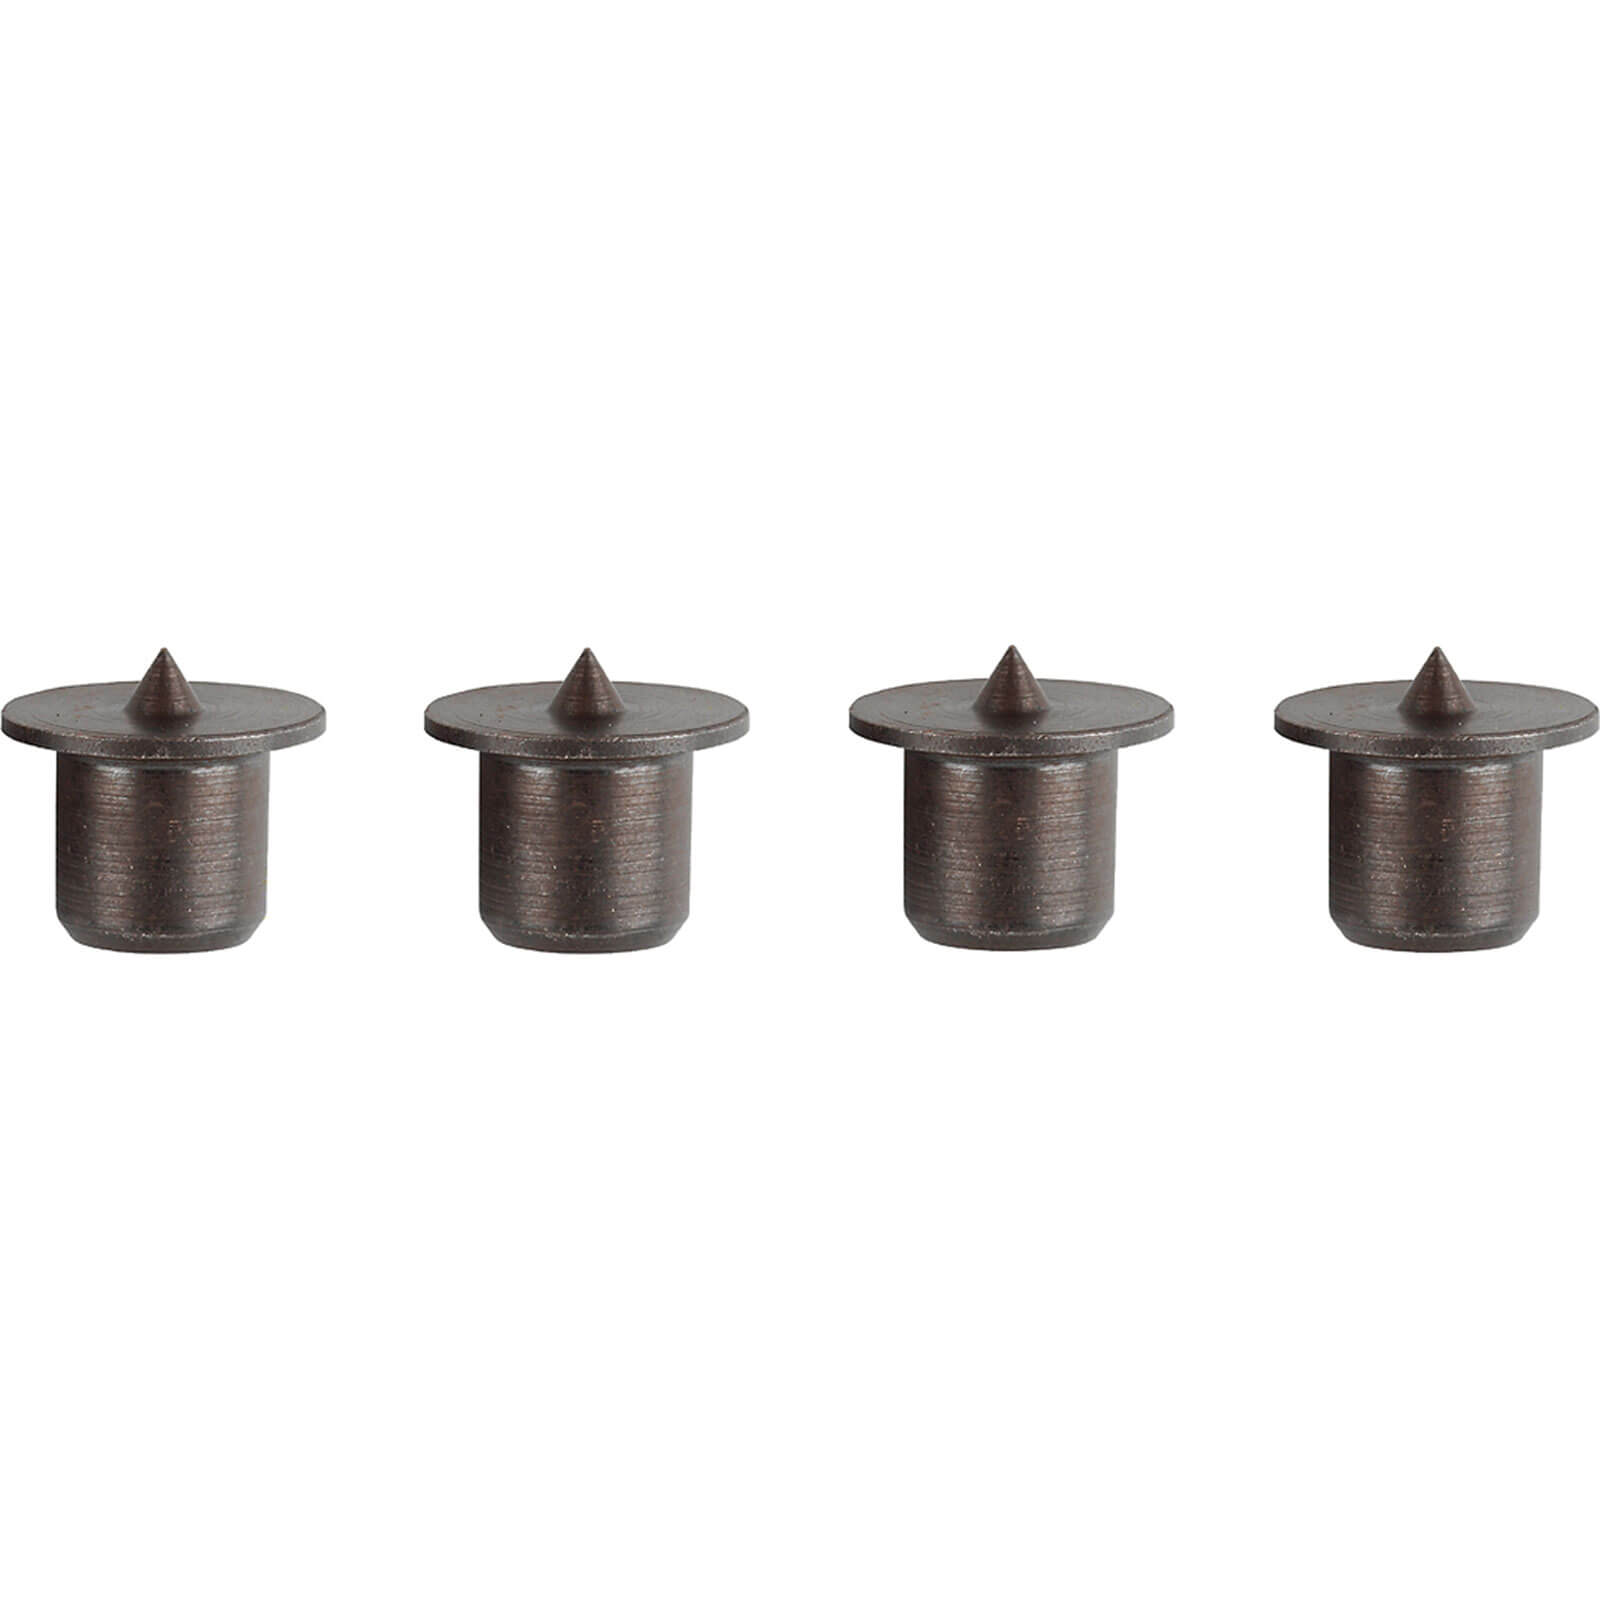 Image of KWB Dowel Marking Points 6mm Pack of 4